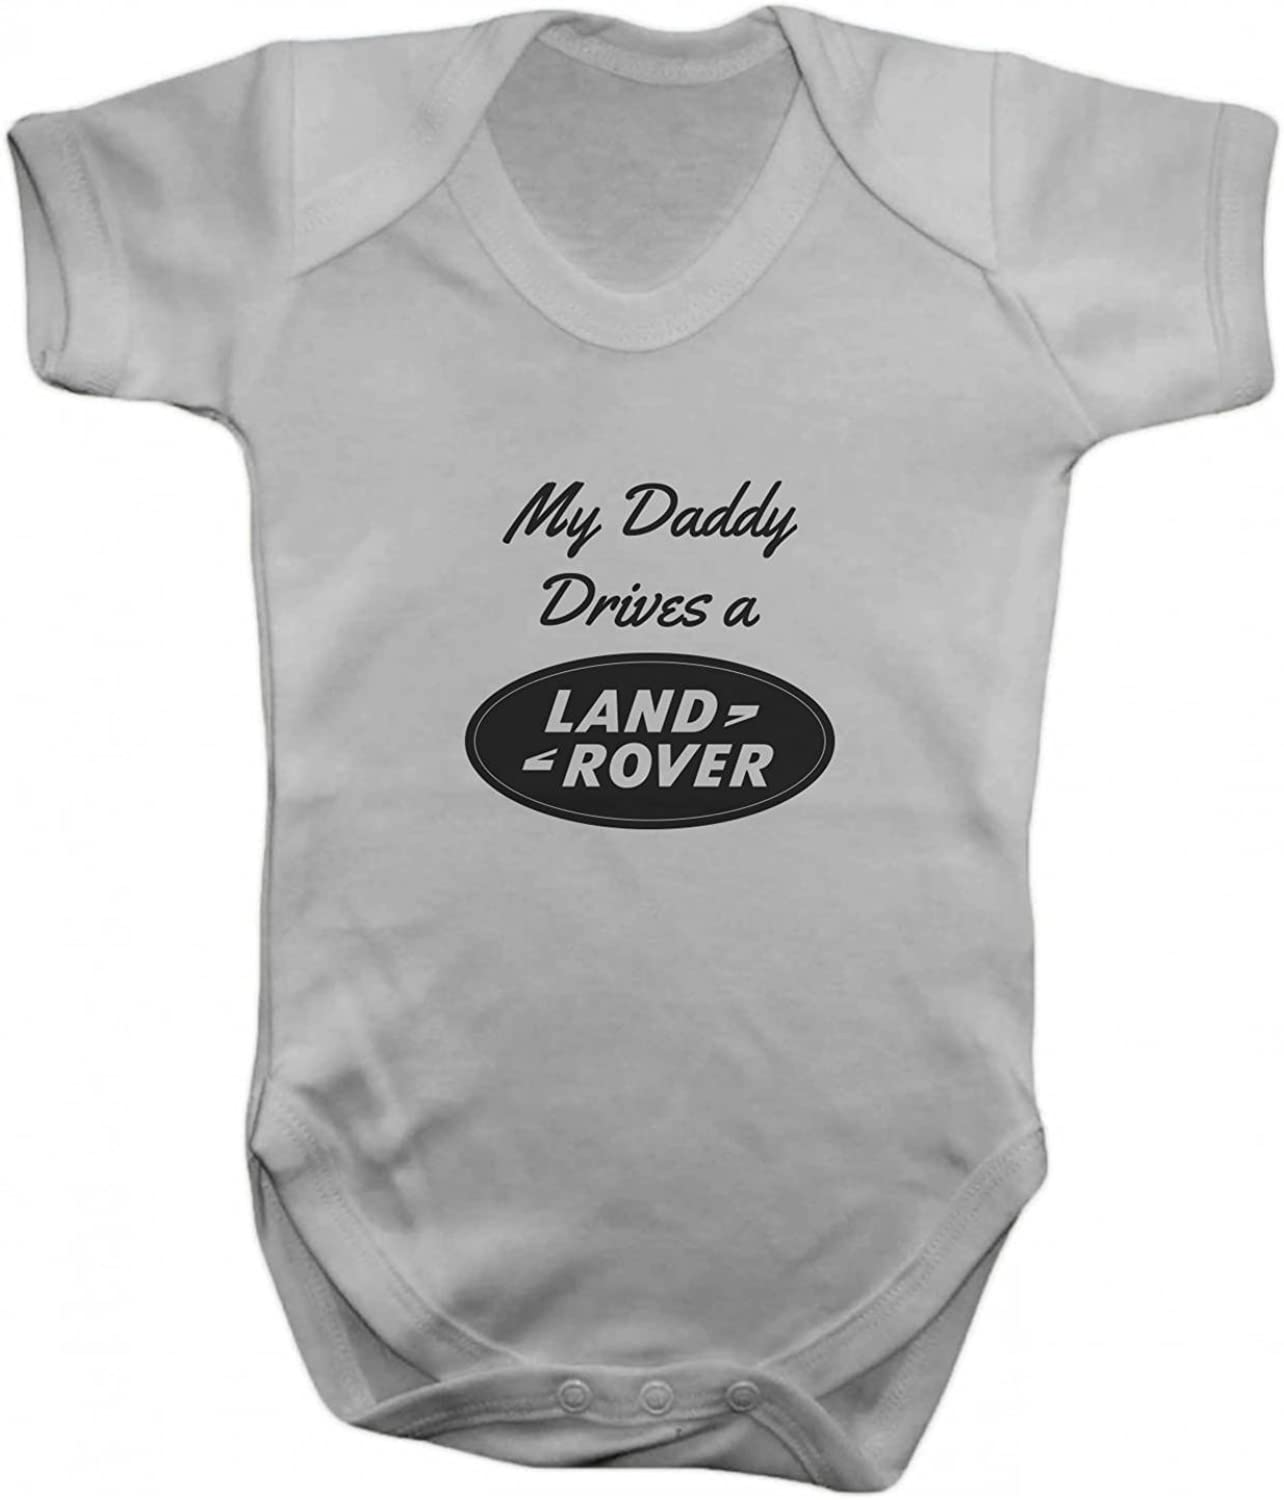 Promini Funny My Daddy Drives a Land Rover Baby Bodysuit